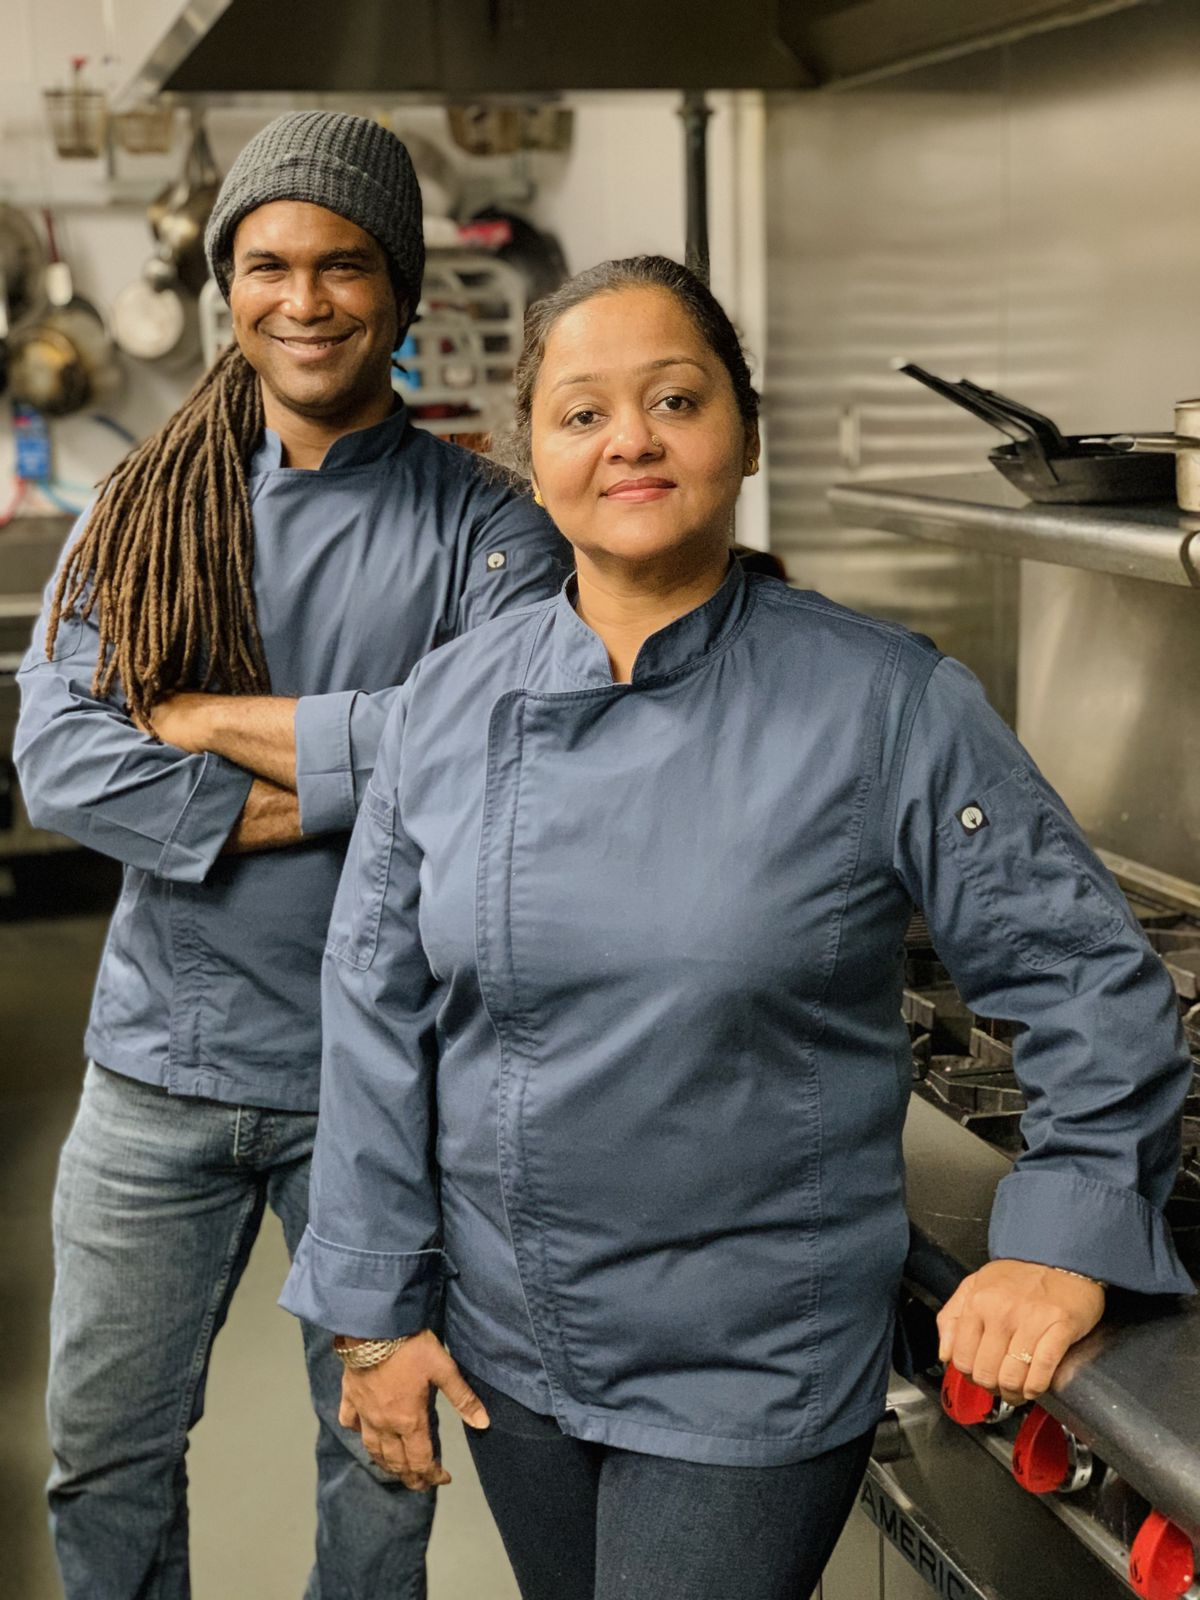 a photo of two chefs in demin blue cooking jackets, standing in a kitchen next to stainless steel appliances. The man, on the lft, has dreadlocks and his arms are crossed at this chest. The woman, on the right, is of Indian descent. She is leaning against the stove.